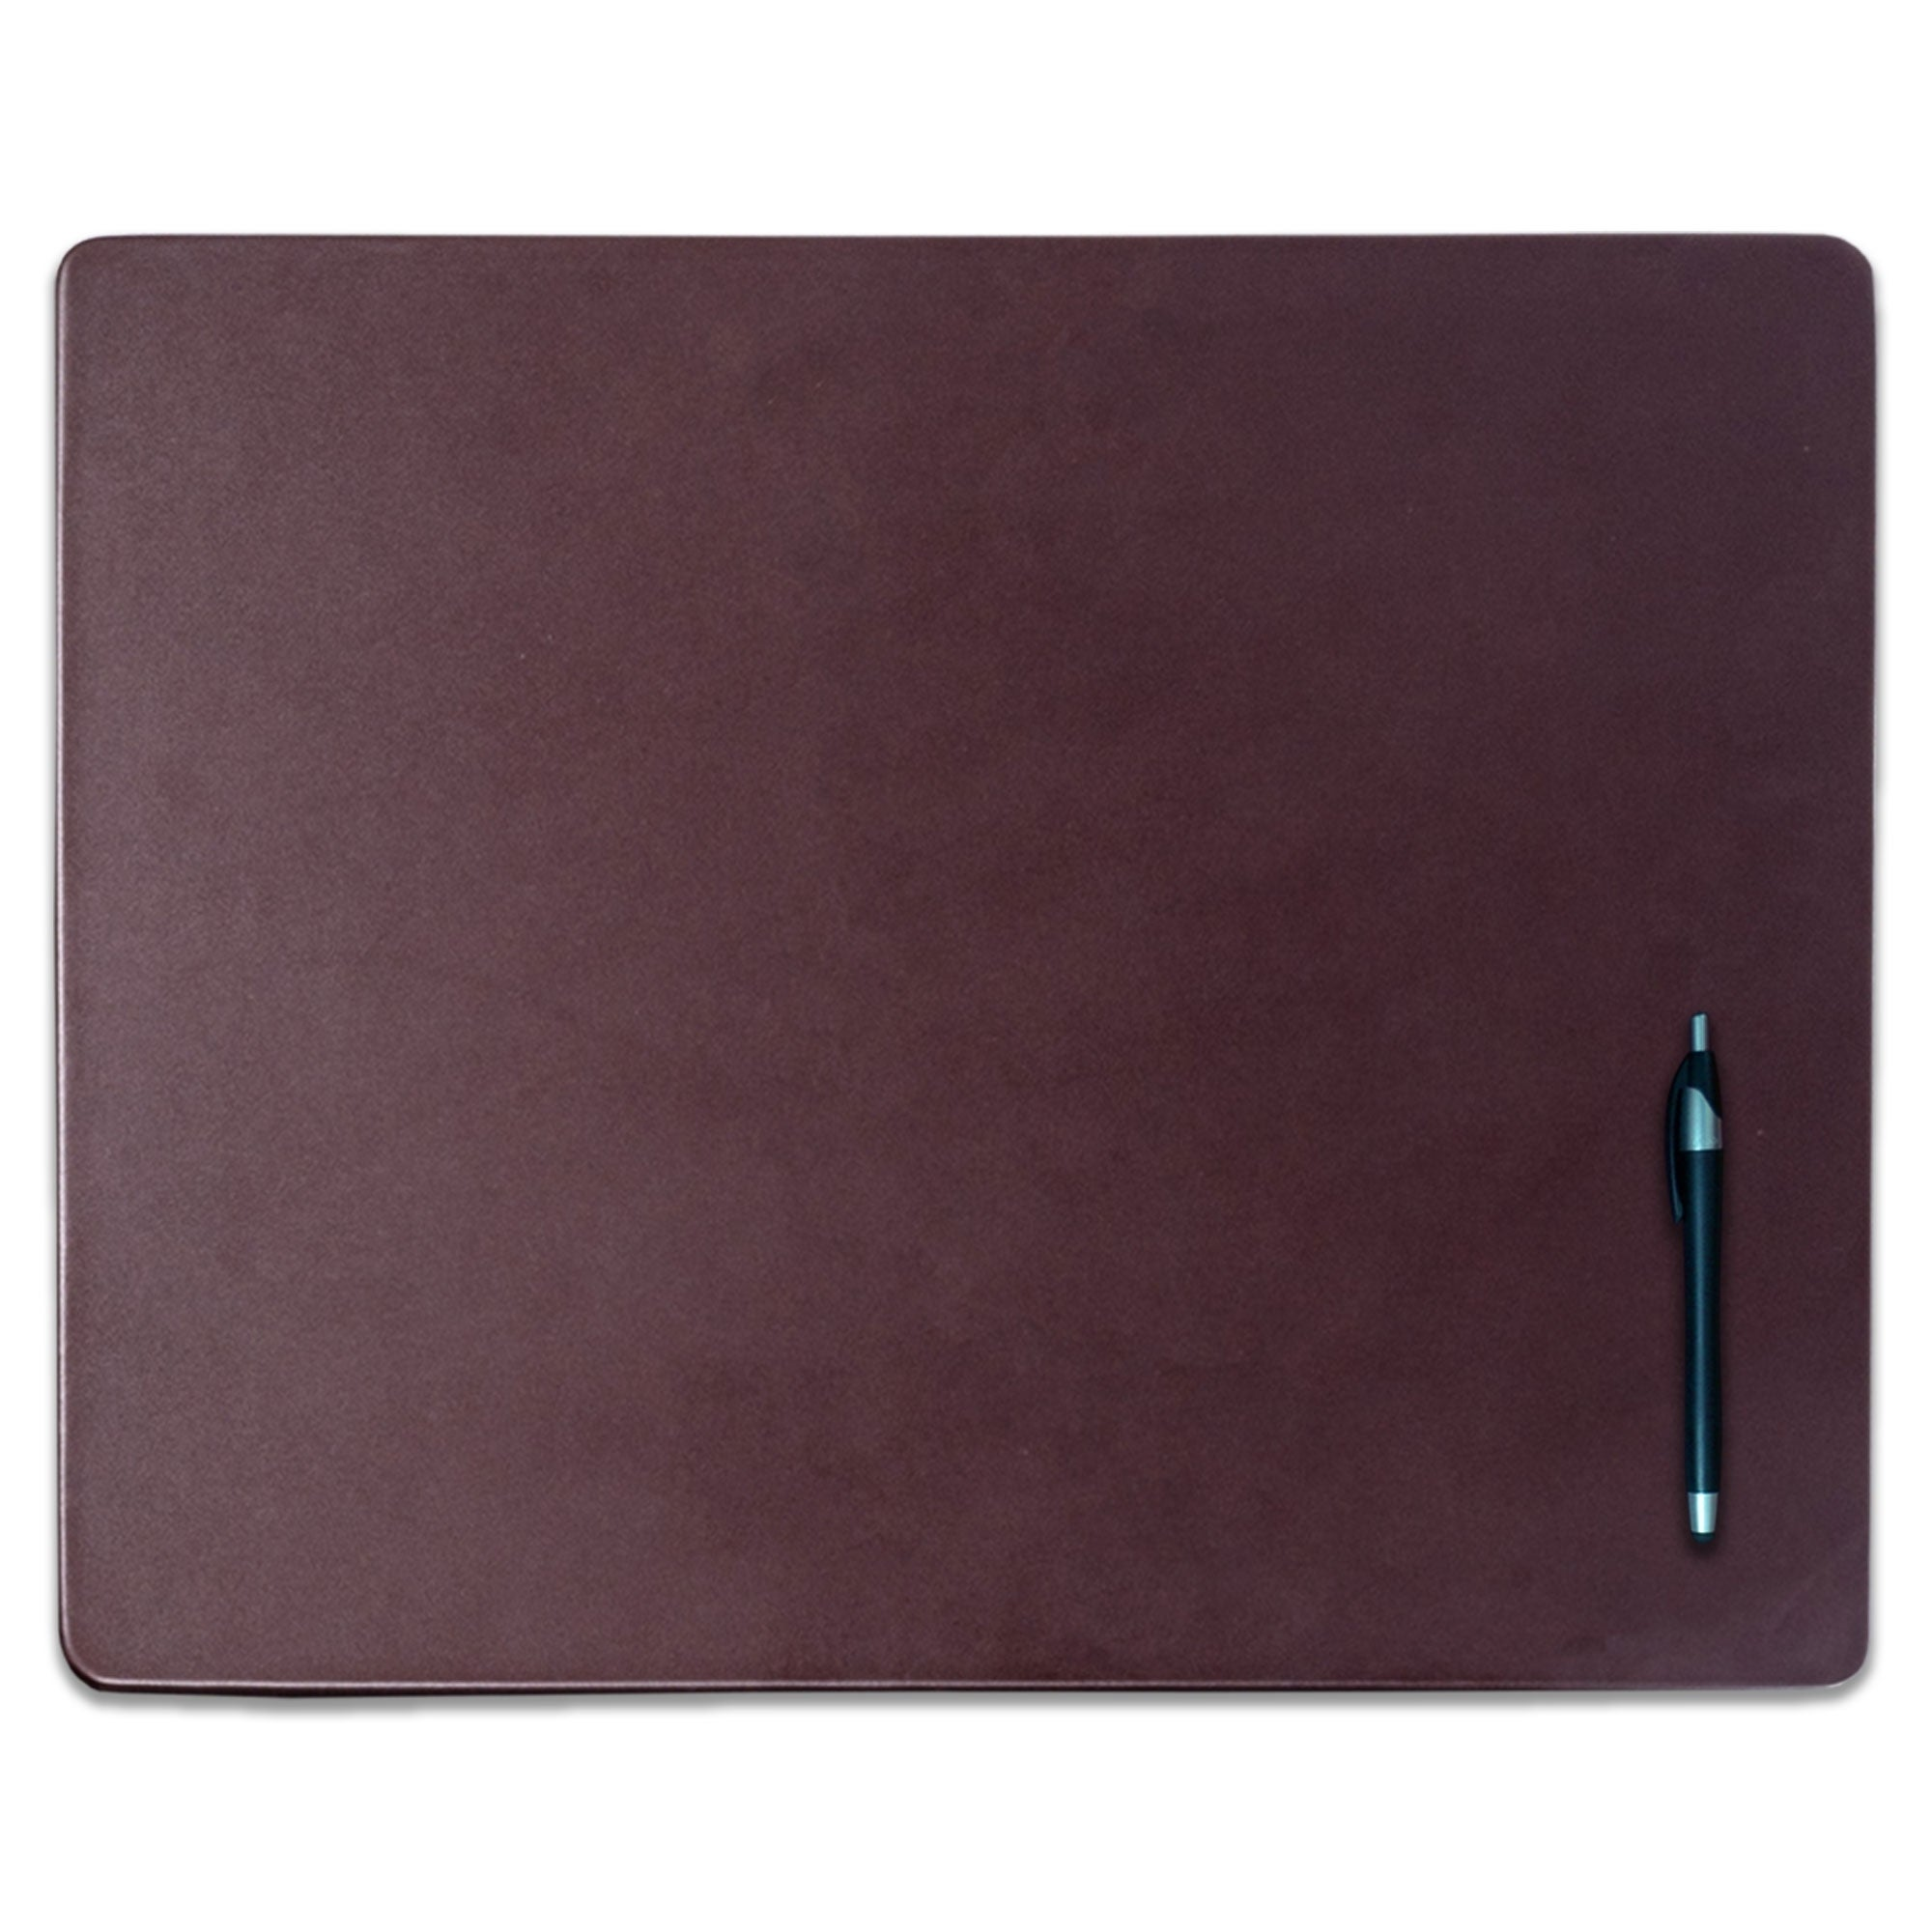 Dacasso Leather 20-inch x 16-inch Conference Table Pad (C...